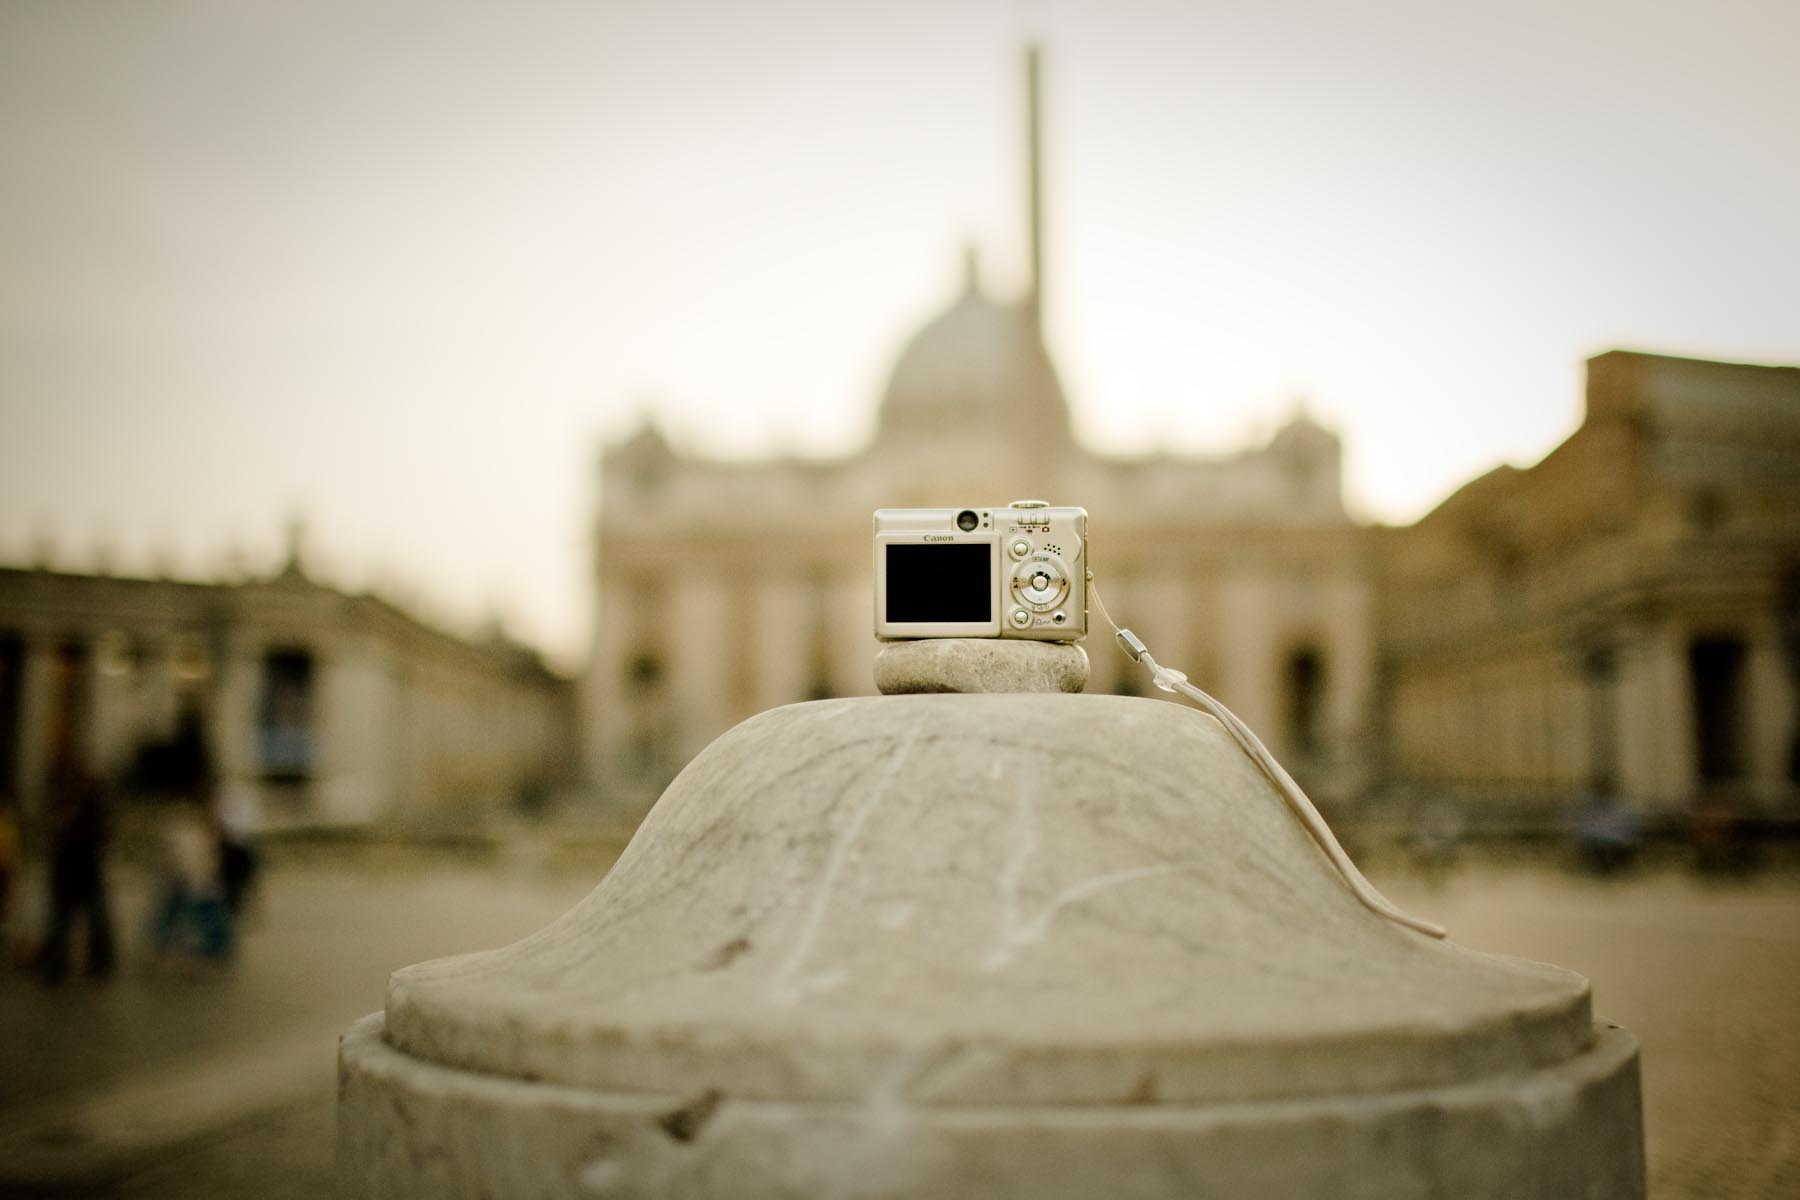 Camera at the Vatican, Rome Italy